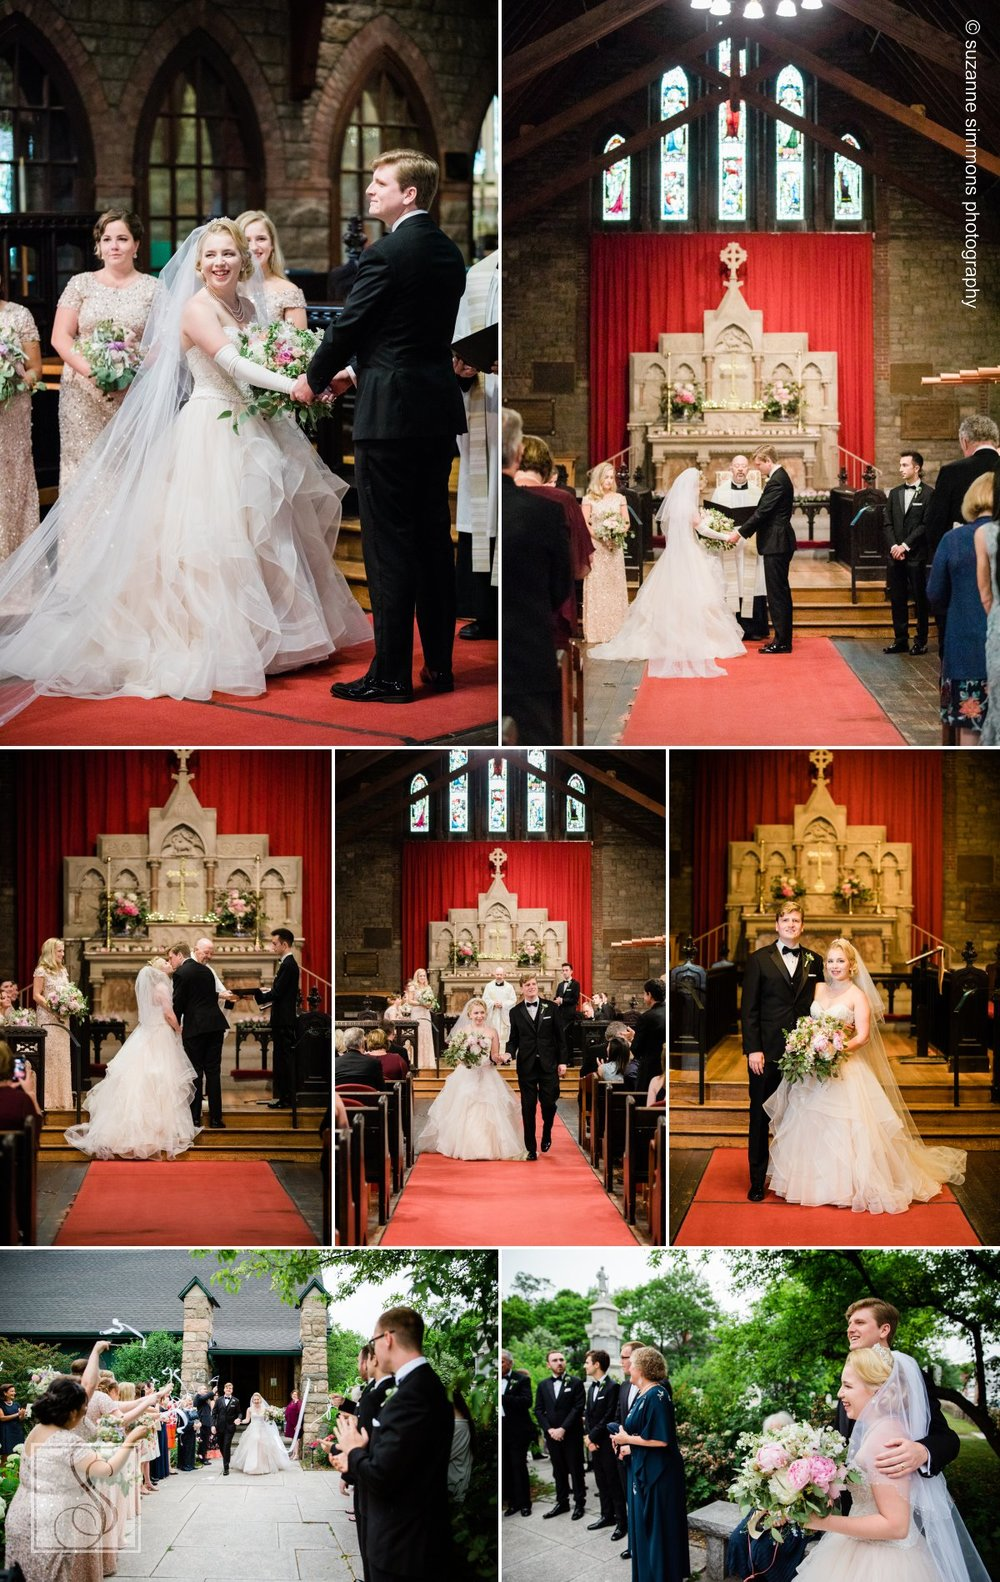 Wedding Ceremony at St Saviour's Episcopal Church